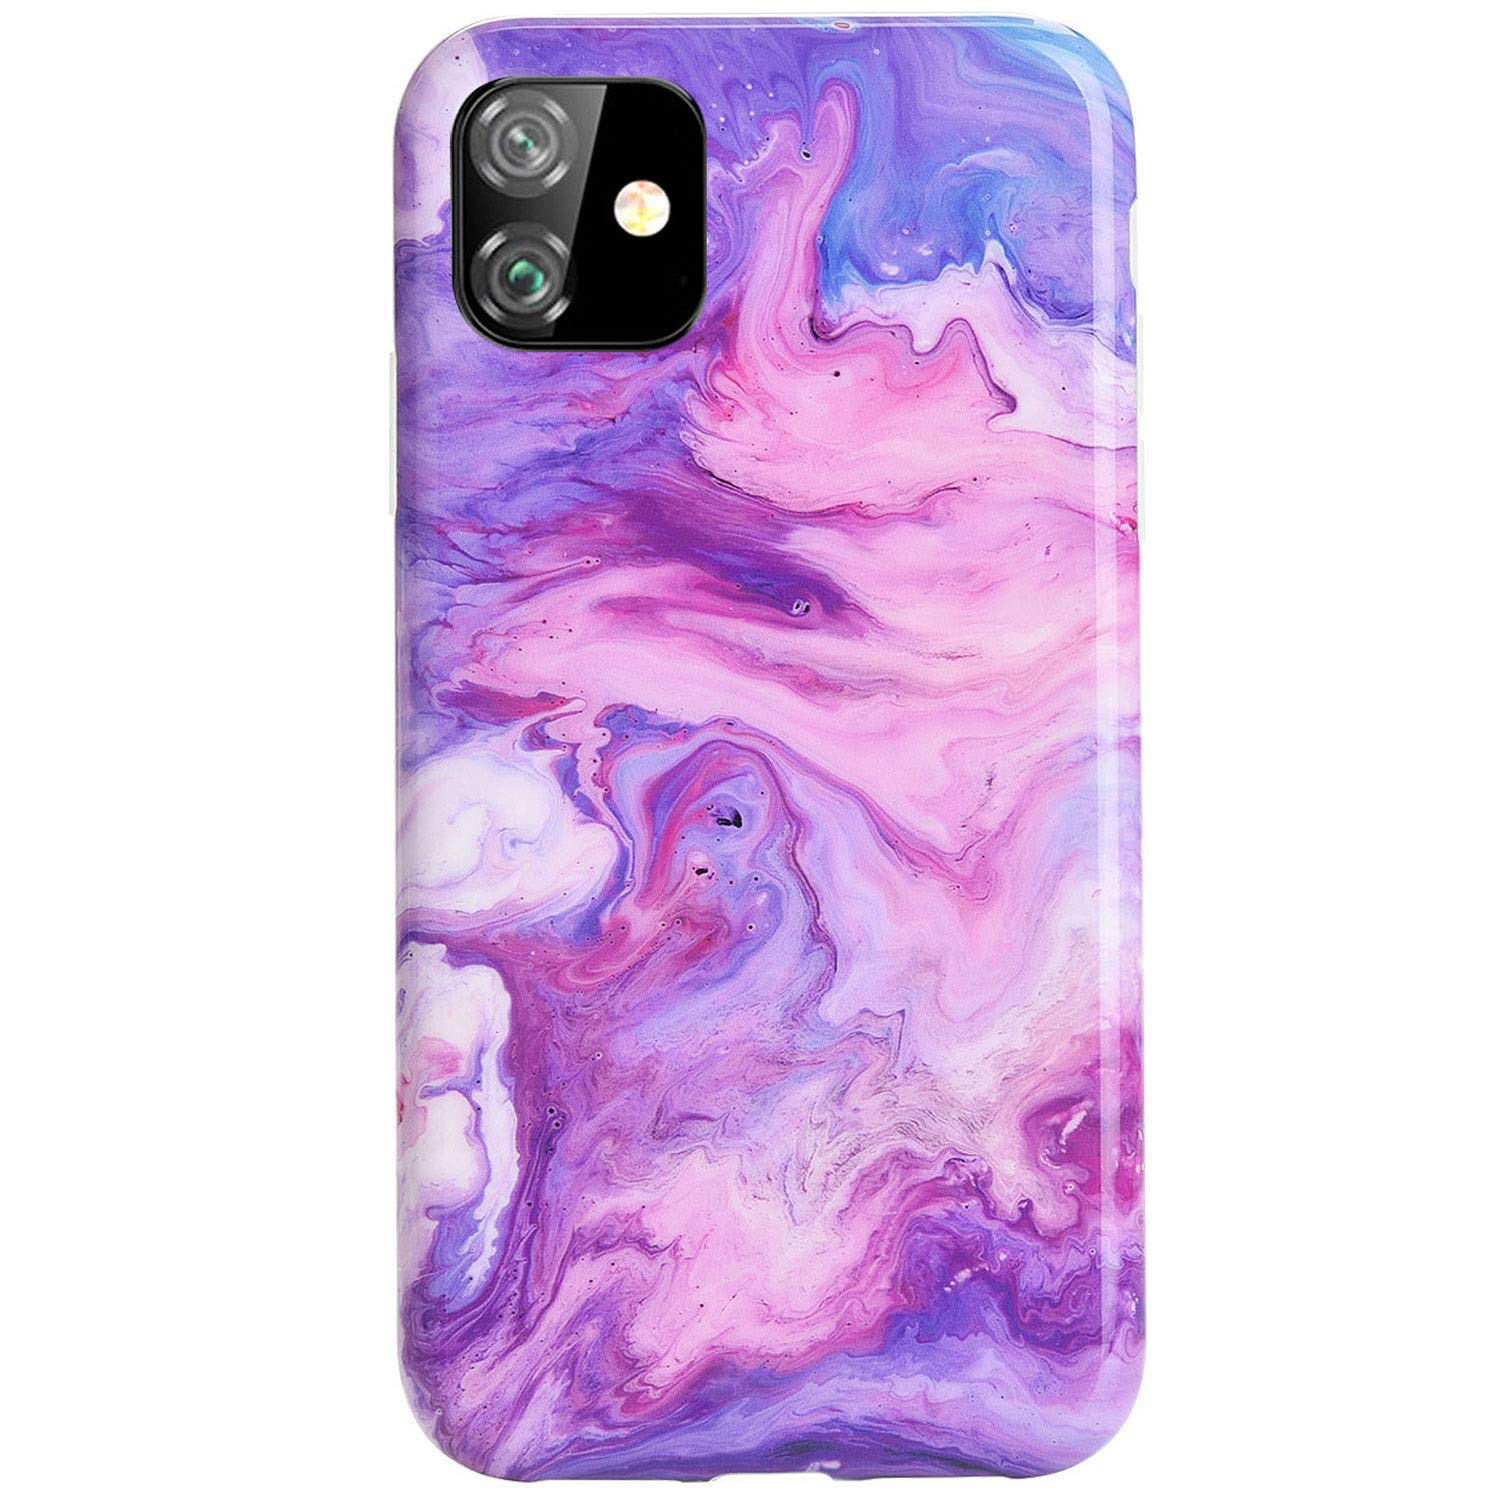 """Reejax iPhone 11 Case 6.1 inch Case with Glass Screen Protector, Purple Marble for Girls Women Best Protective Slim Fit Clear Bumper Glossy TPU Soft Silicon Cover Phone Case for iPhone 11 Case 6.1"""""""